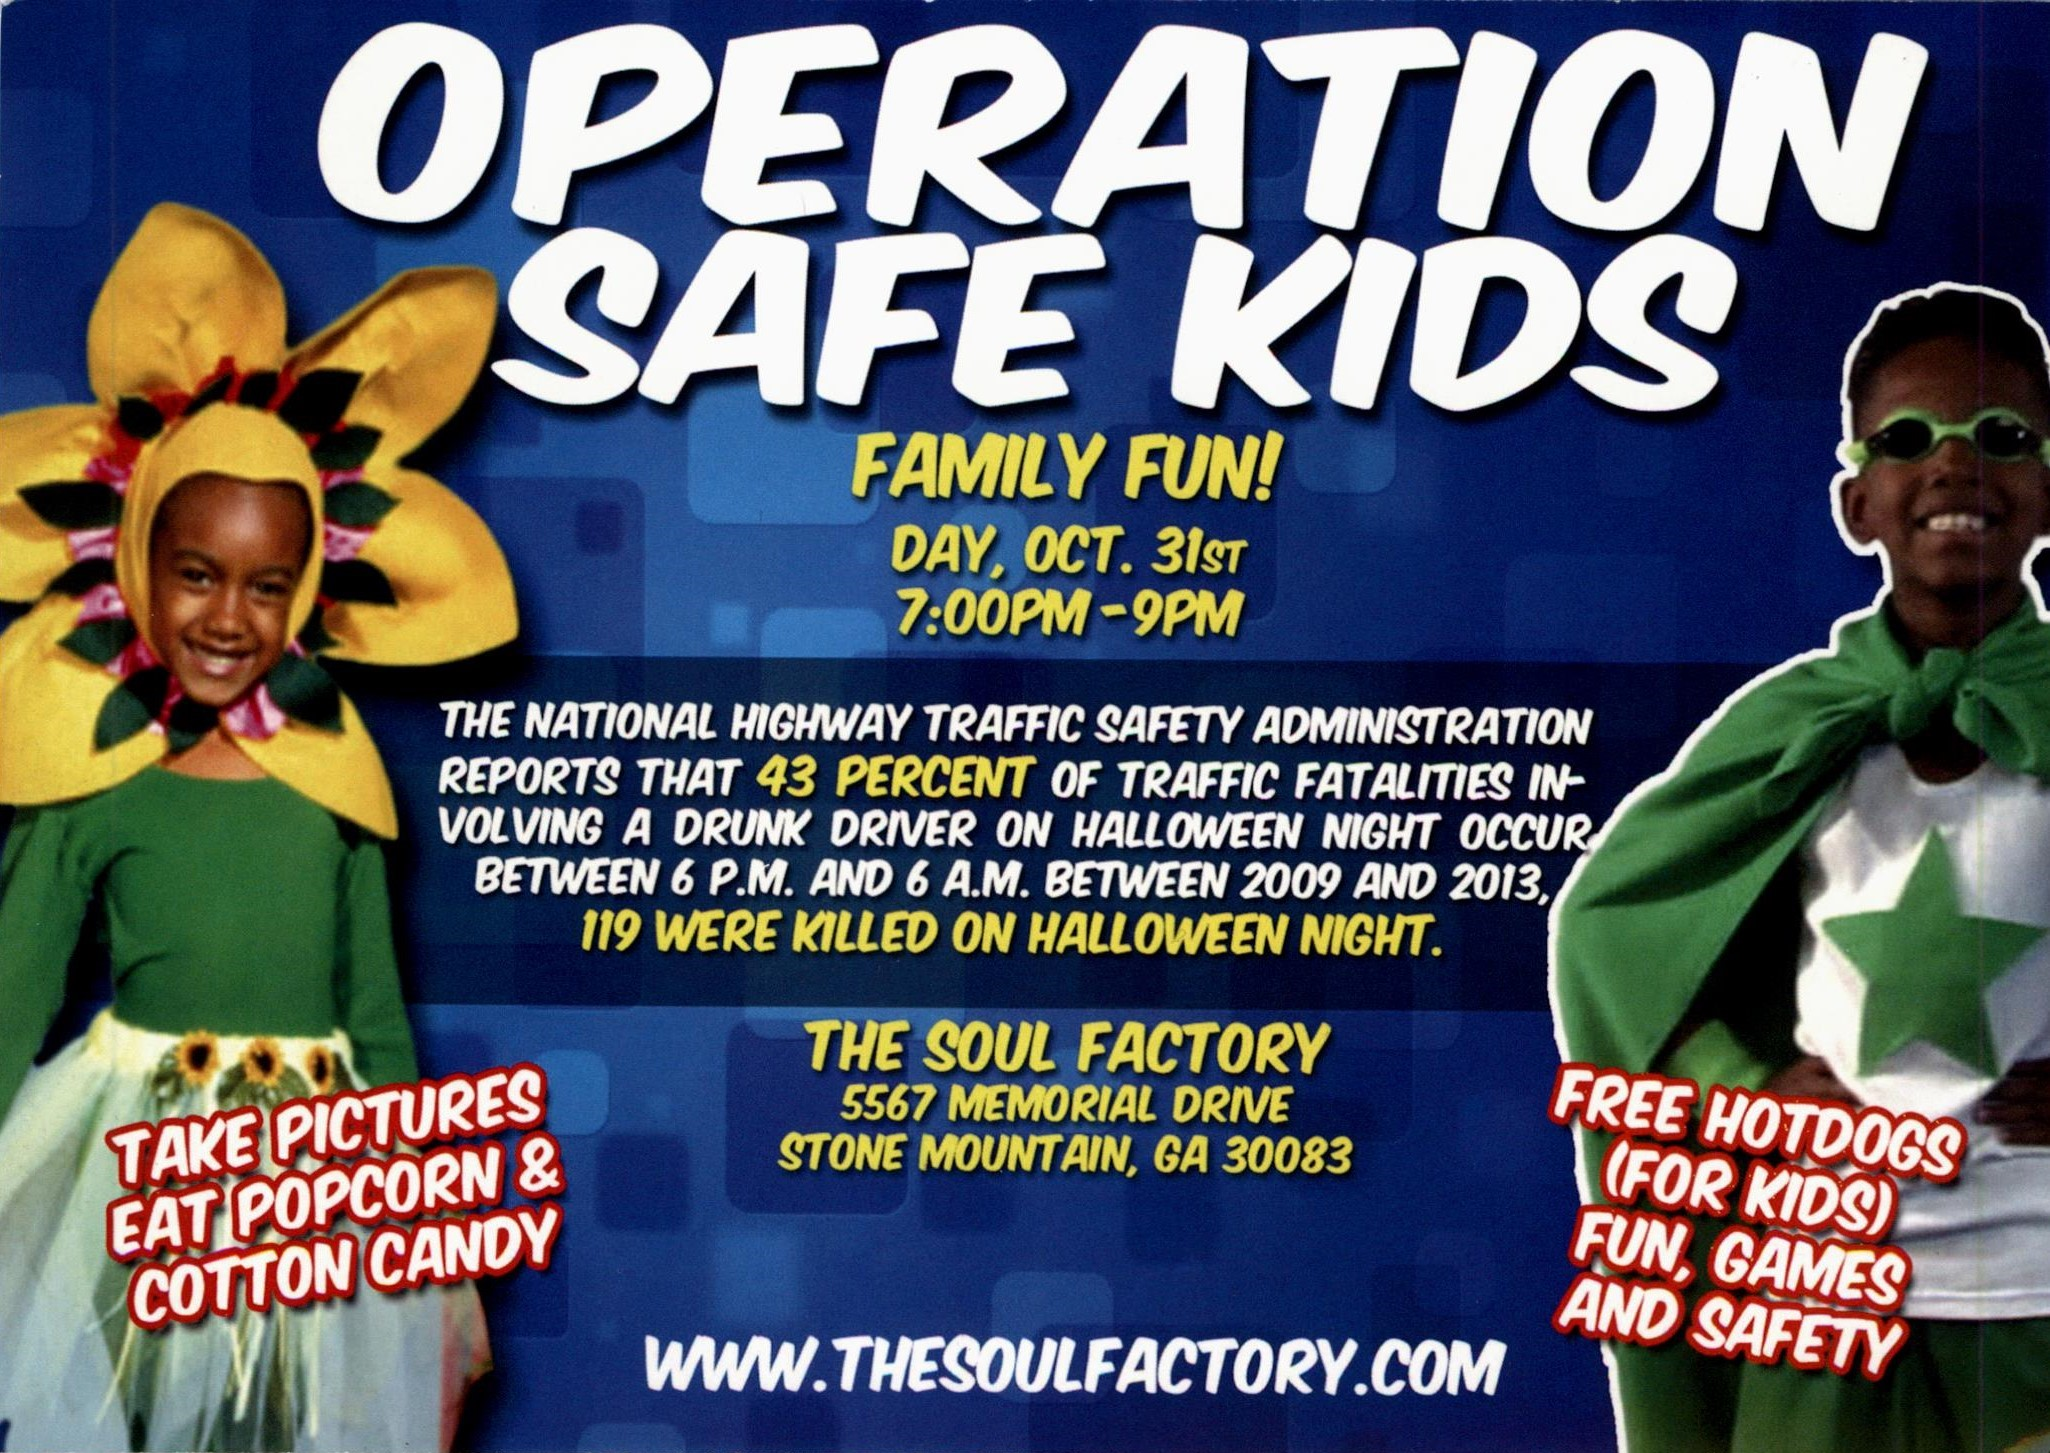 Operation Safe Kids Family Fun